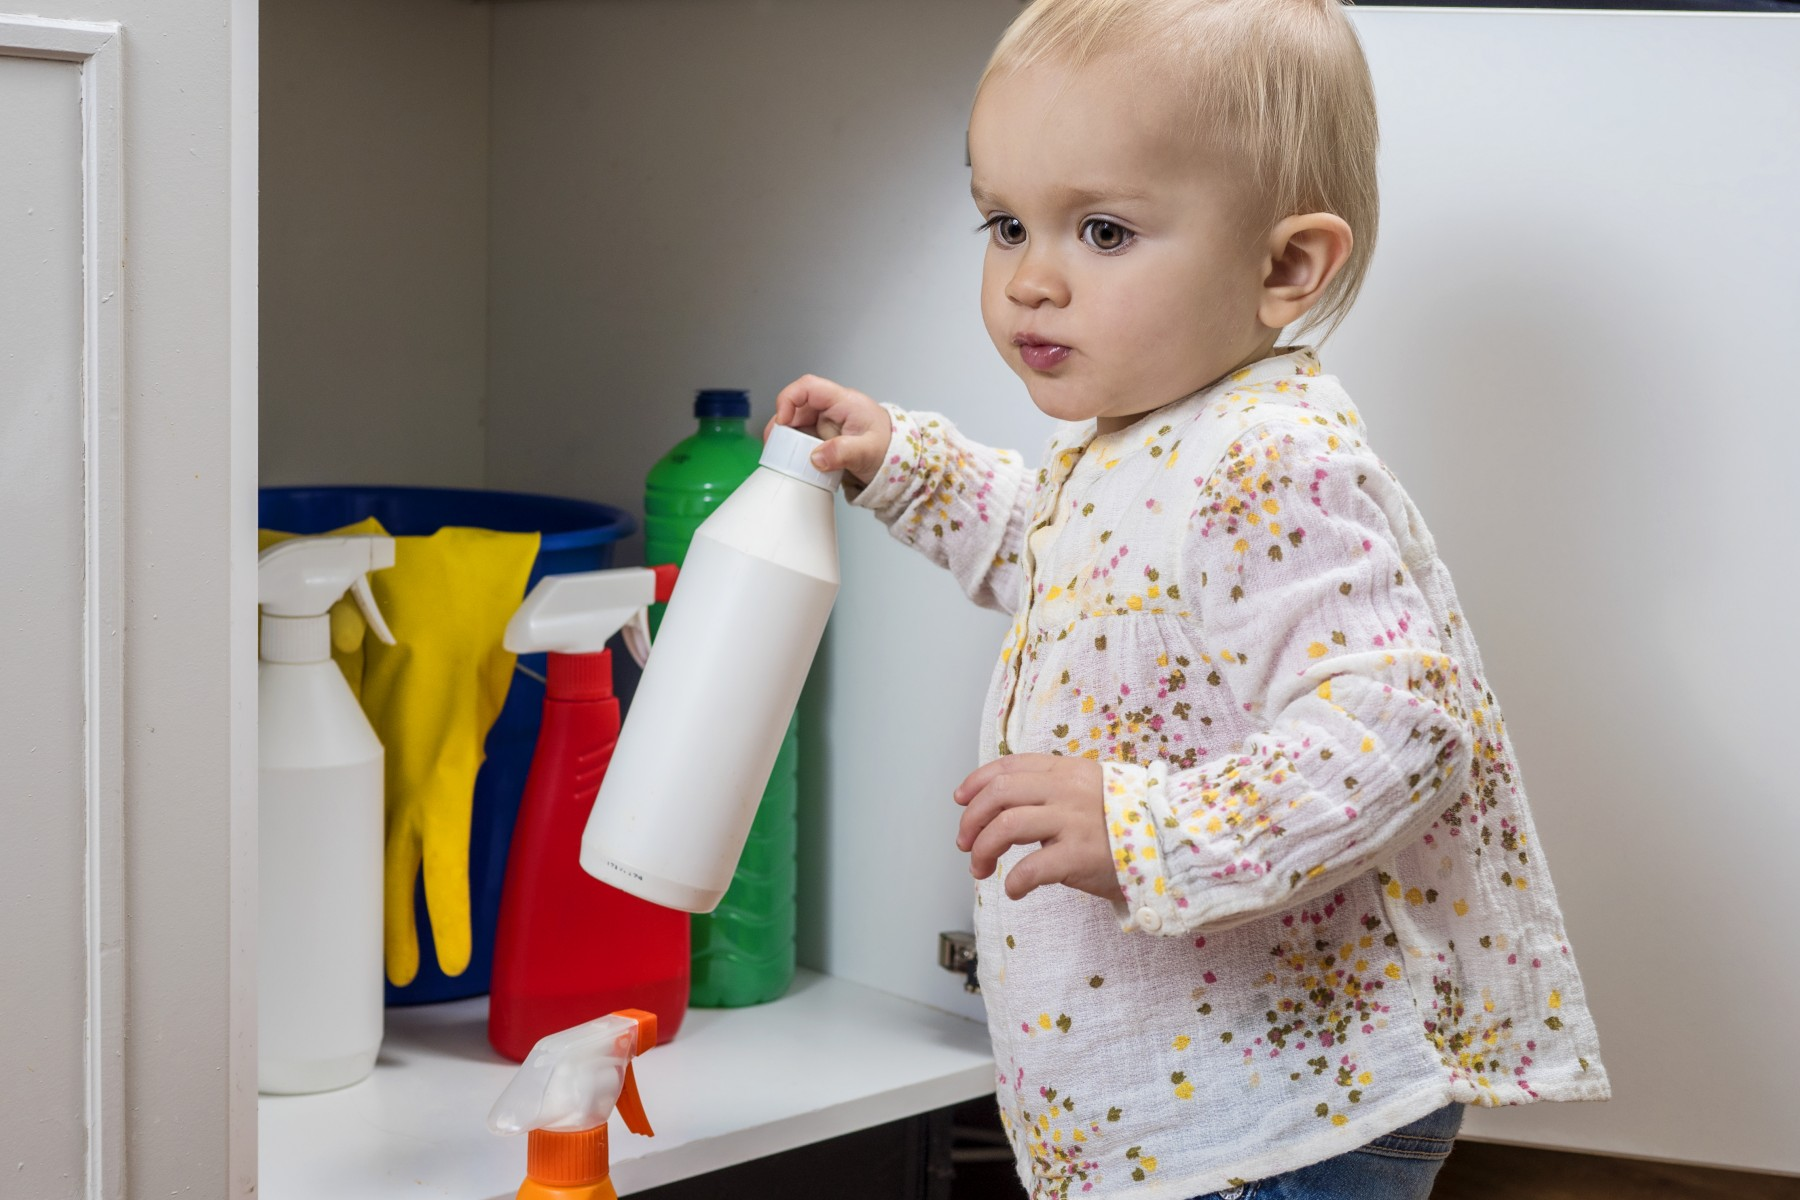 Exposure to household chemicals may delay reading development.